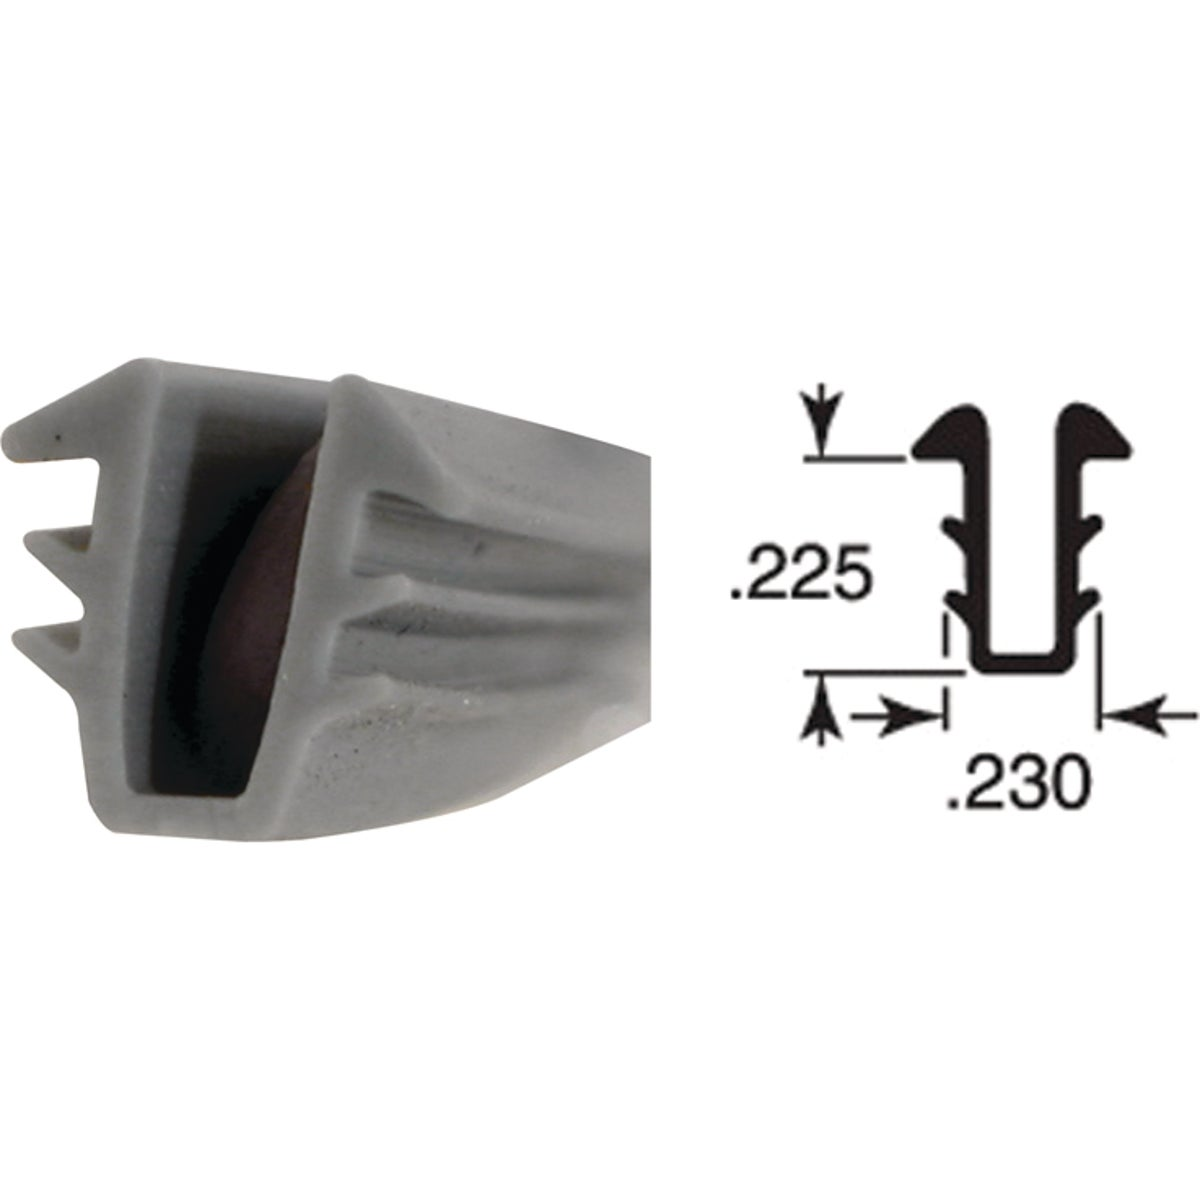 9/32X5/32X200 U-CHANNEL - P7732 by Prime Line Products